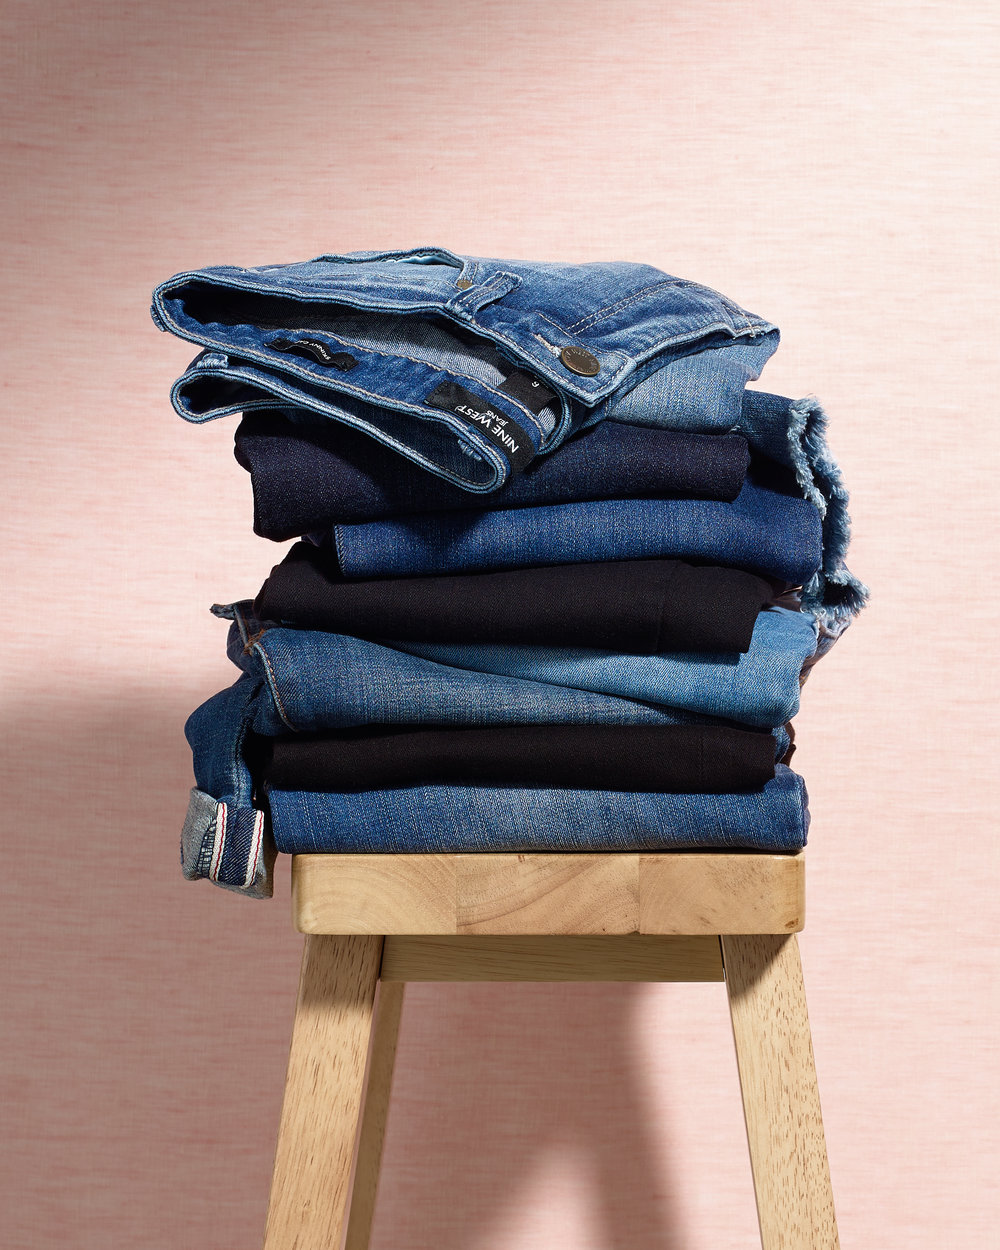 0460_B_FALL1_W_C_DESK_GW_DENIMCOPYTEST_crp.jpg